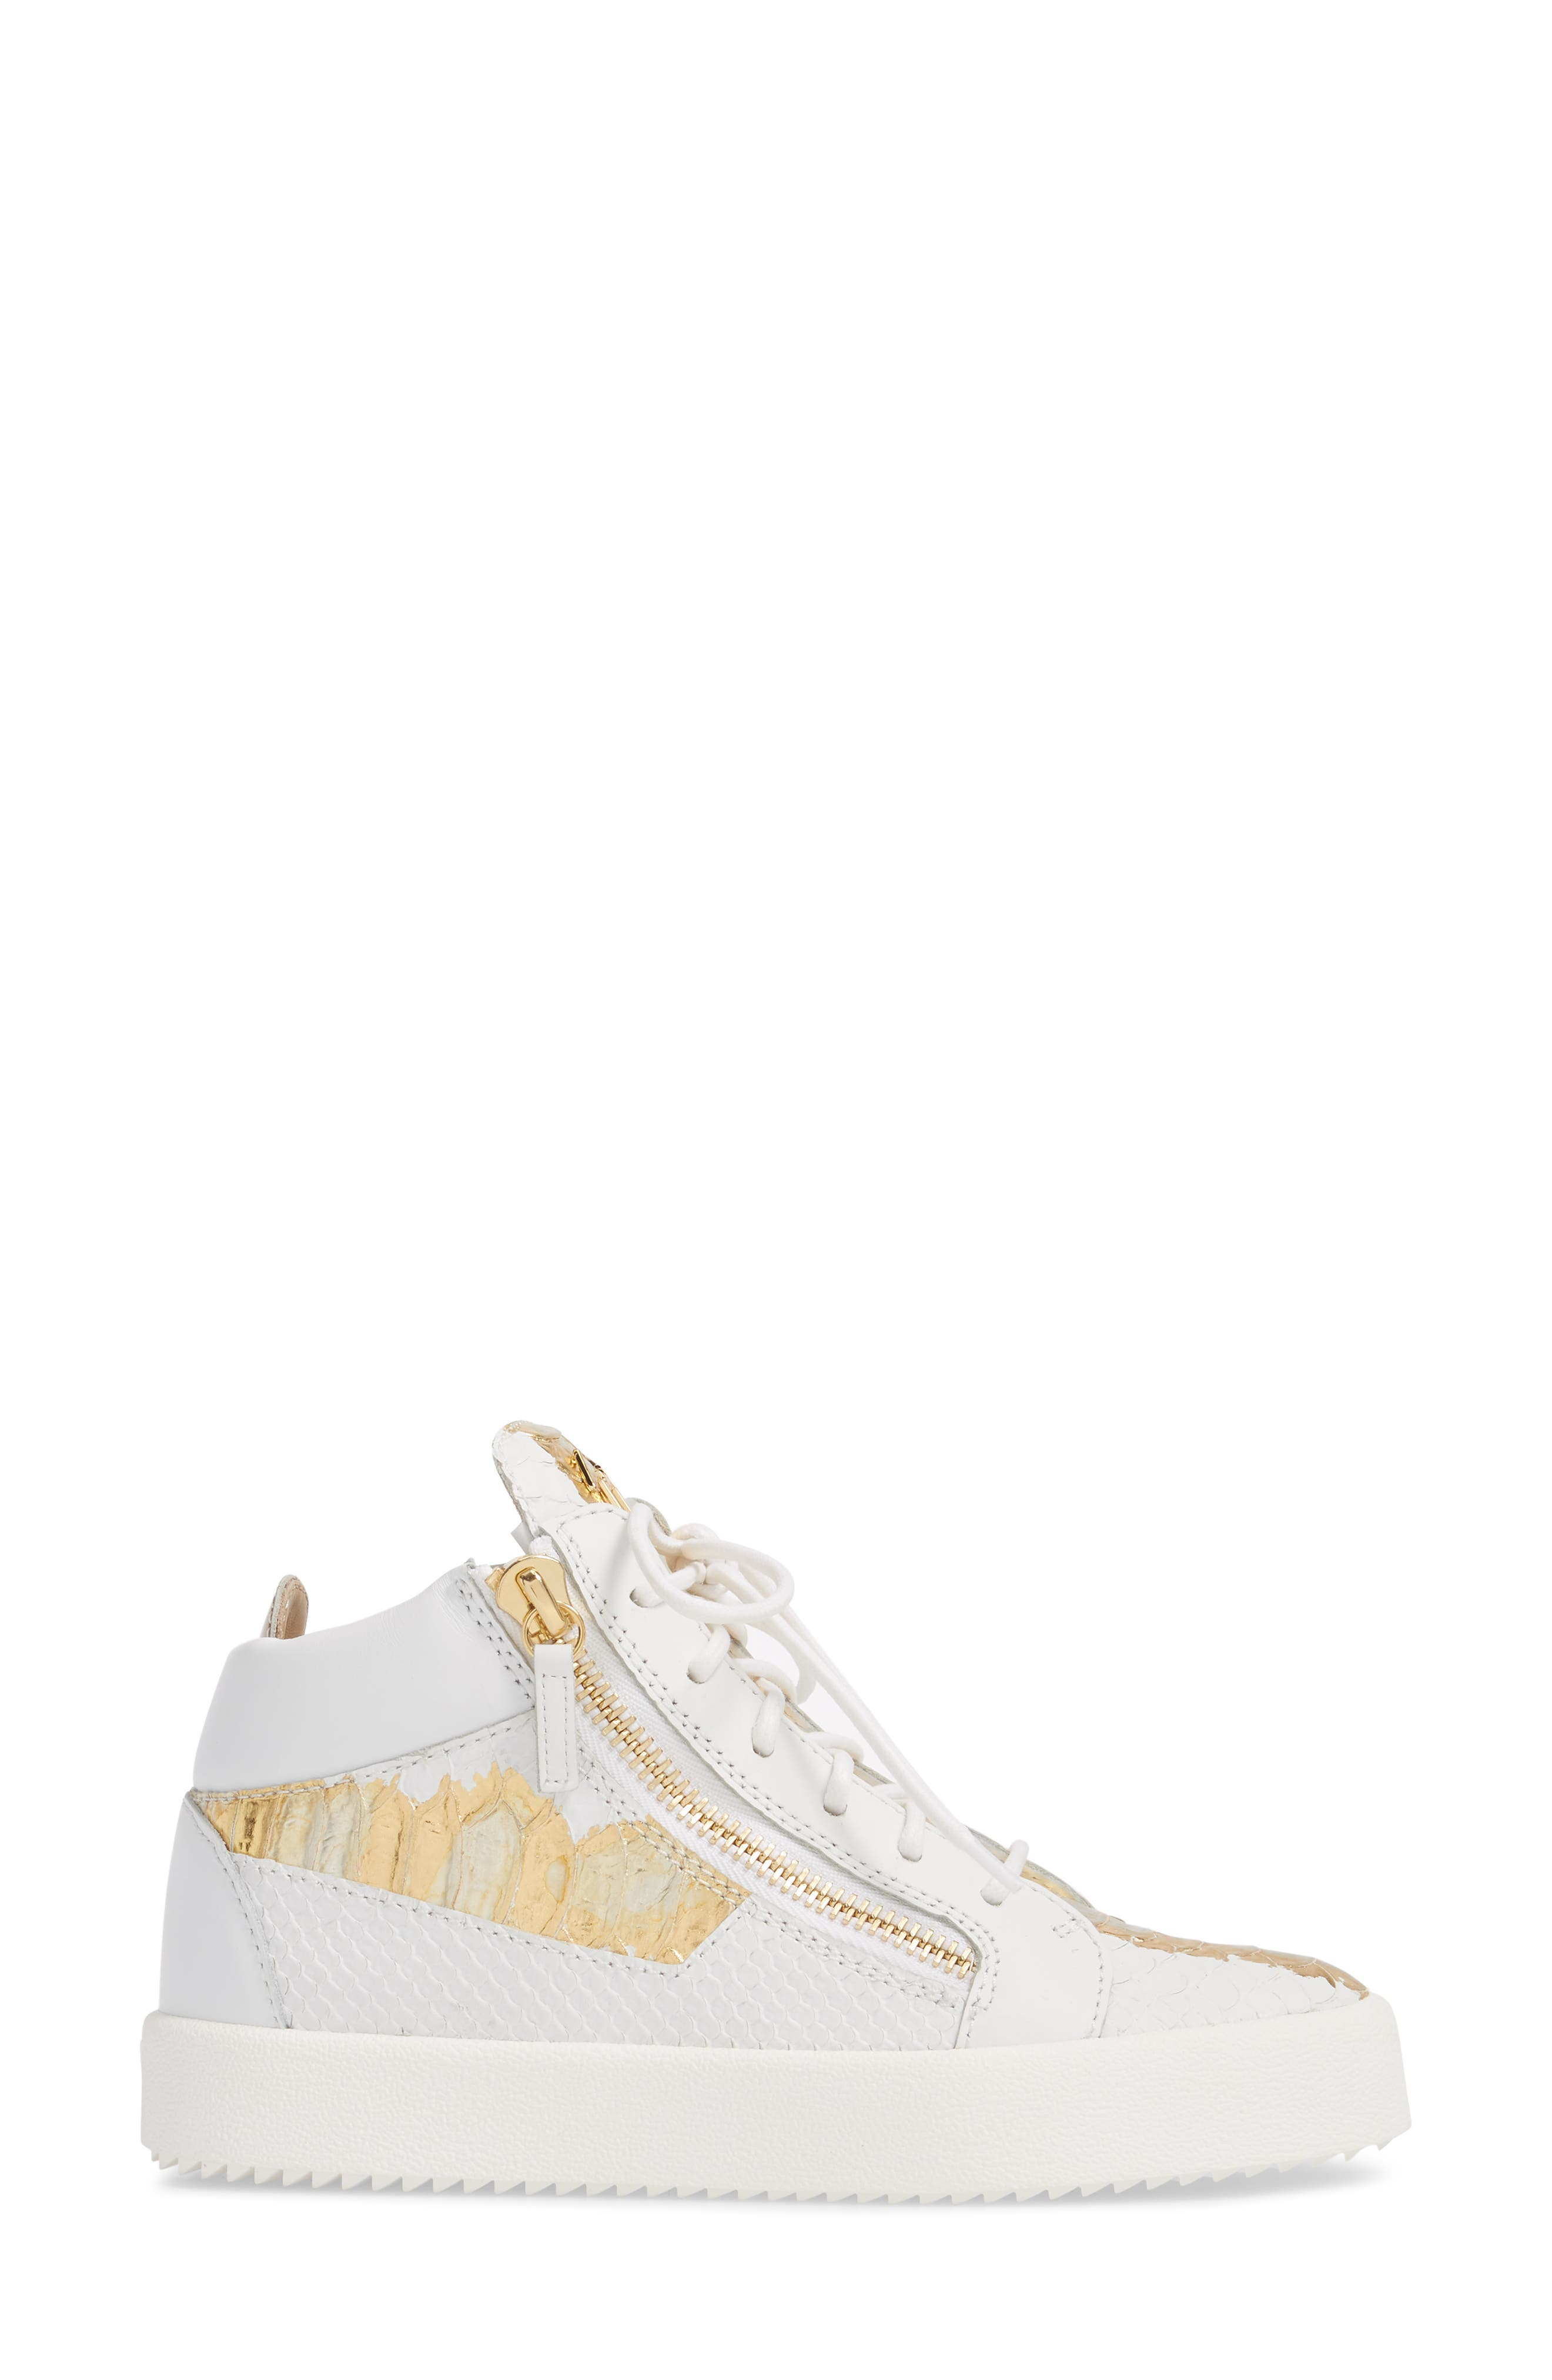 May London Mid Top Sneaker,                             Alternate thumbnail 3, color,                             WHITE/NEON YELLOW